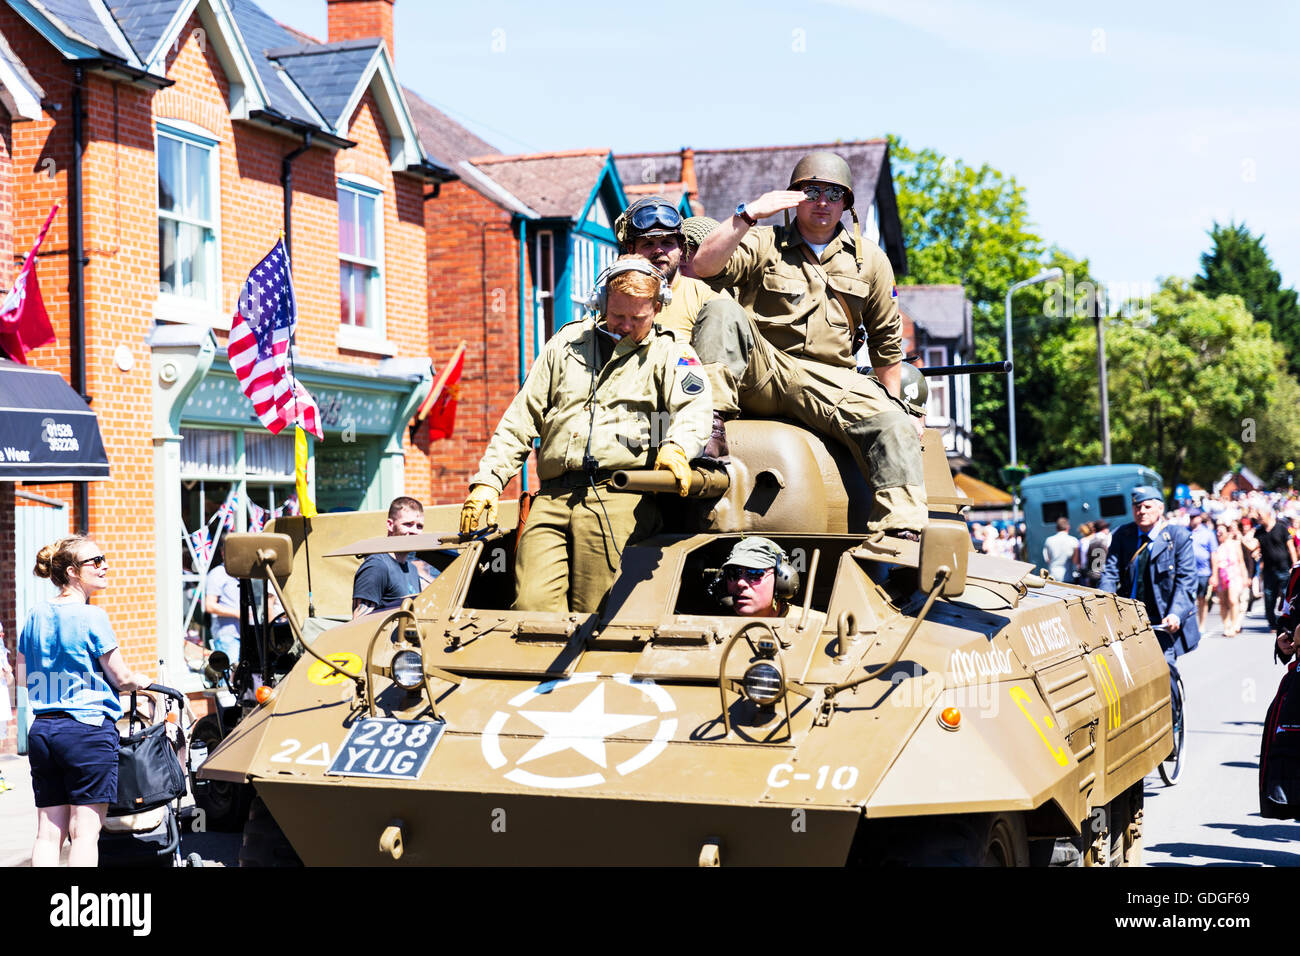 USA US army tank patrol on streets military forces returning from duty 1940's weekend People and vehicles from - Stock Image